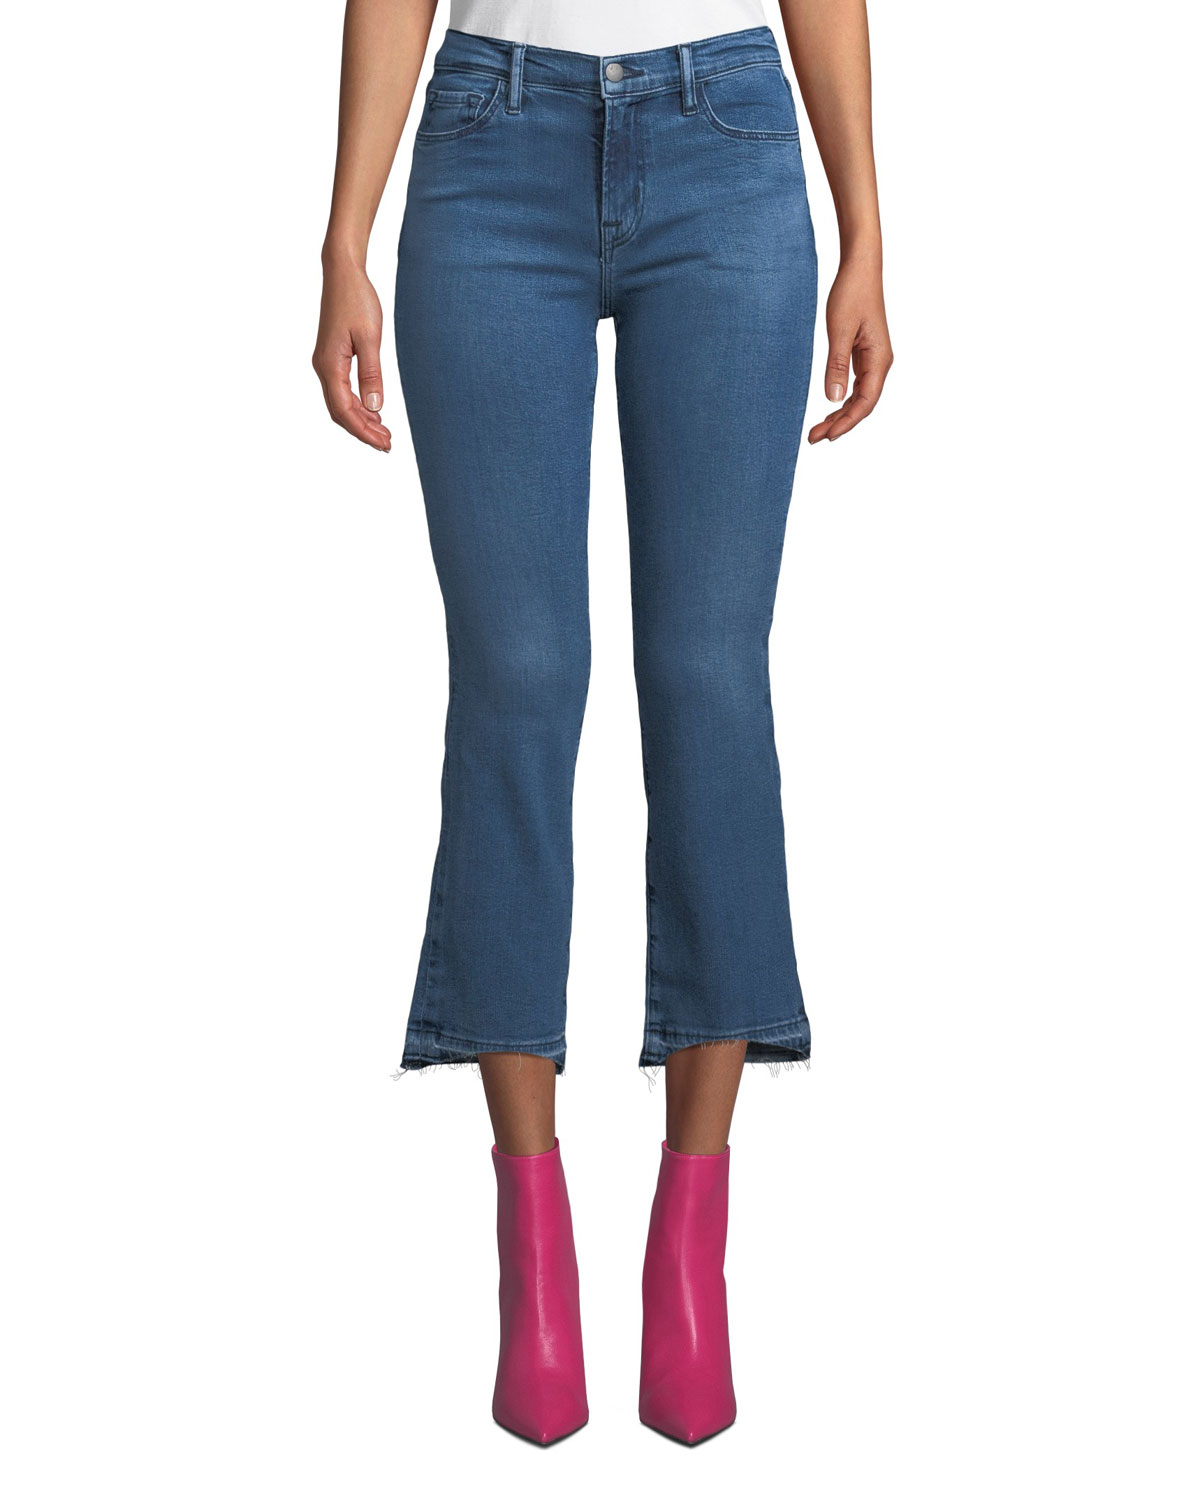 Selena Mid-Rise Cropped Boot-Cut Jeans With Released Hem in Earthy